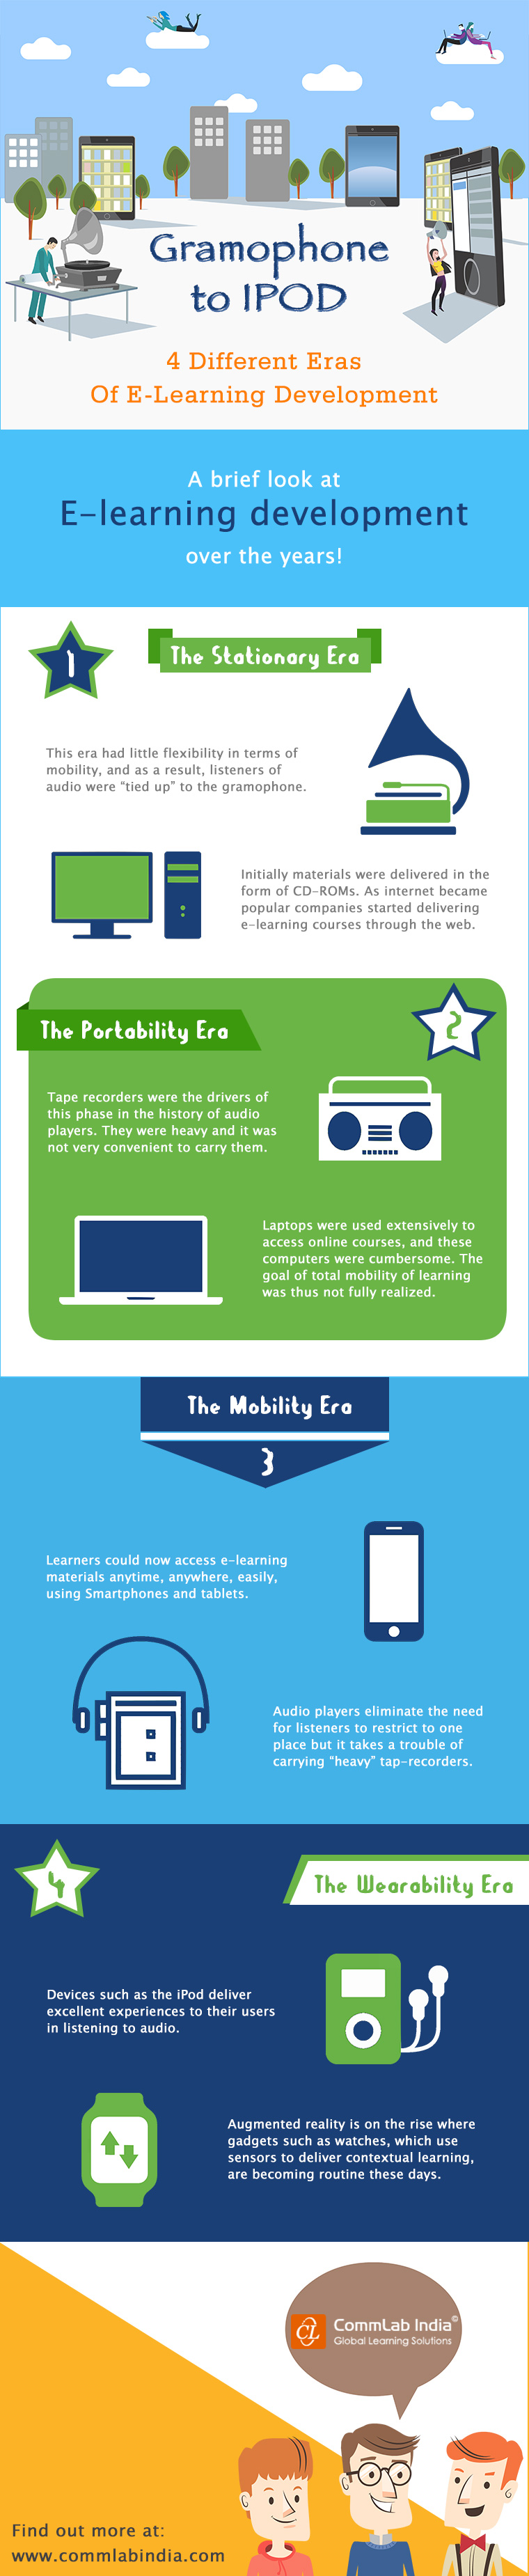 Gramophone To IPOD: 4 Different Eras Of E-Learning Development [Infographic]